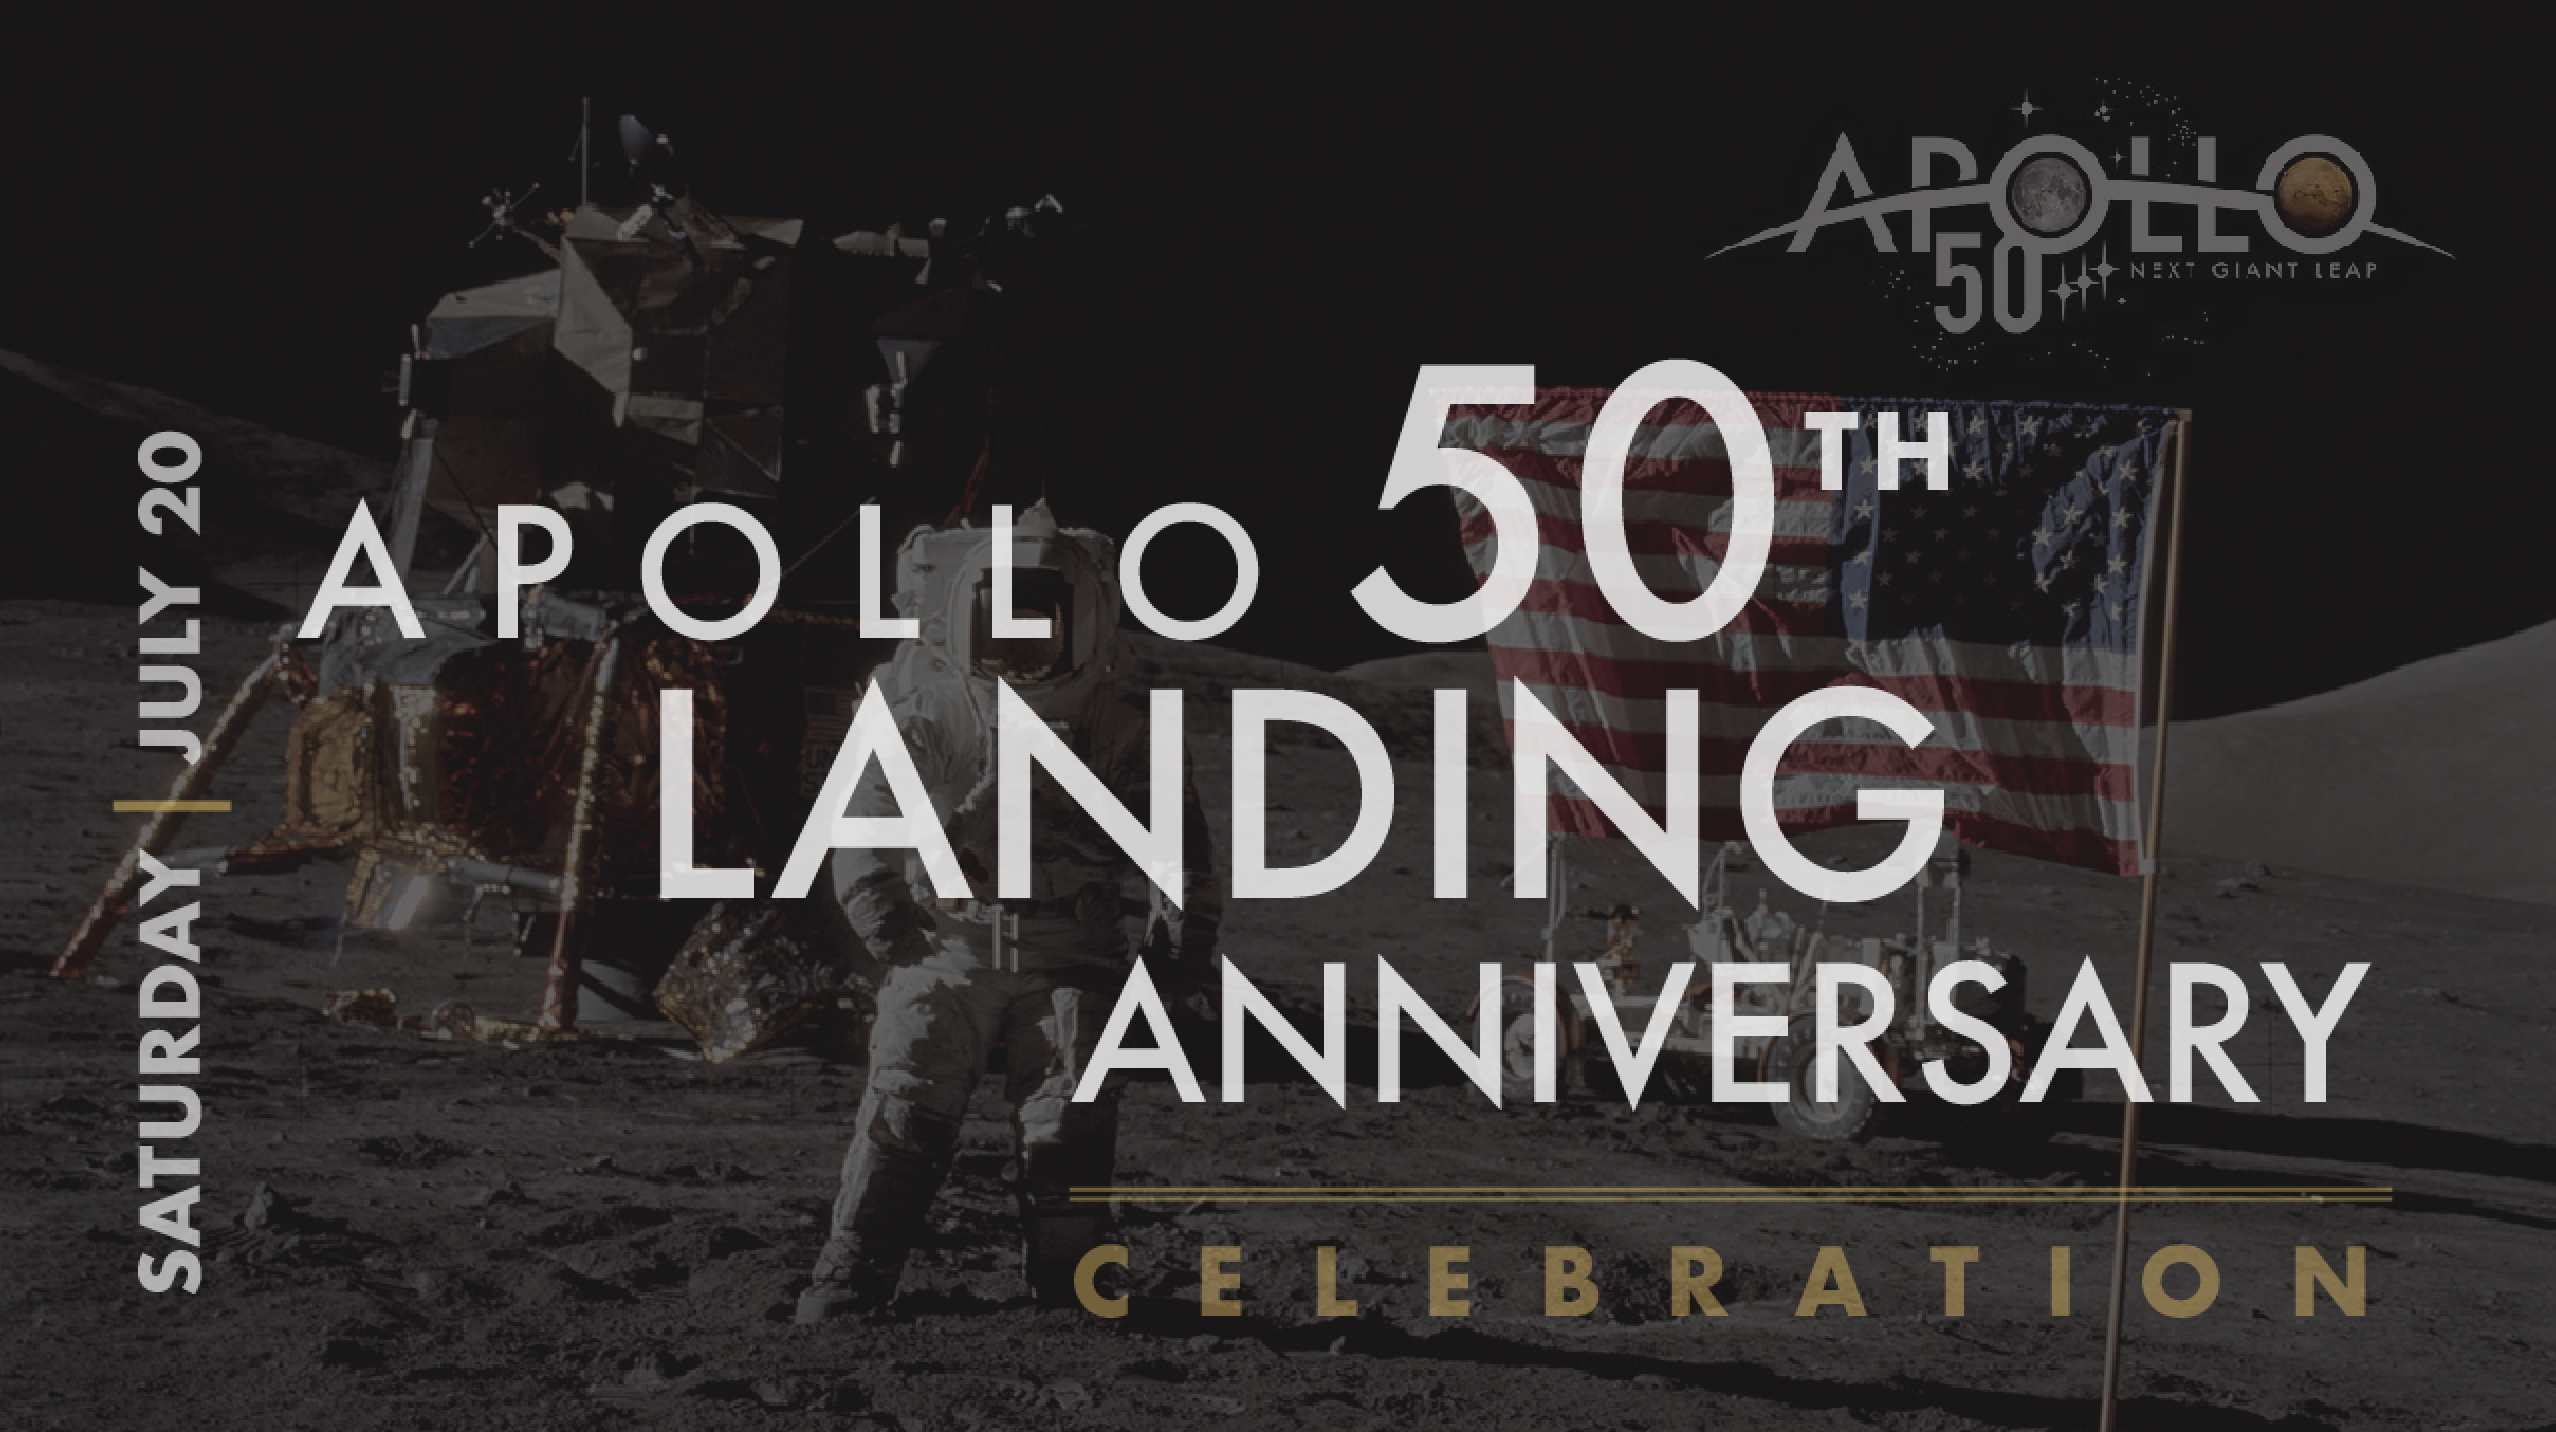 Apollo 50th Anniversary Celebration